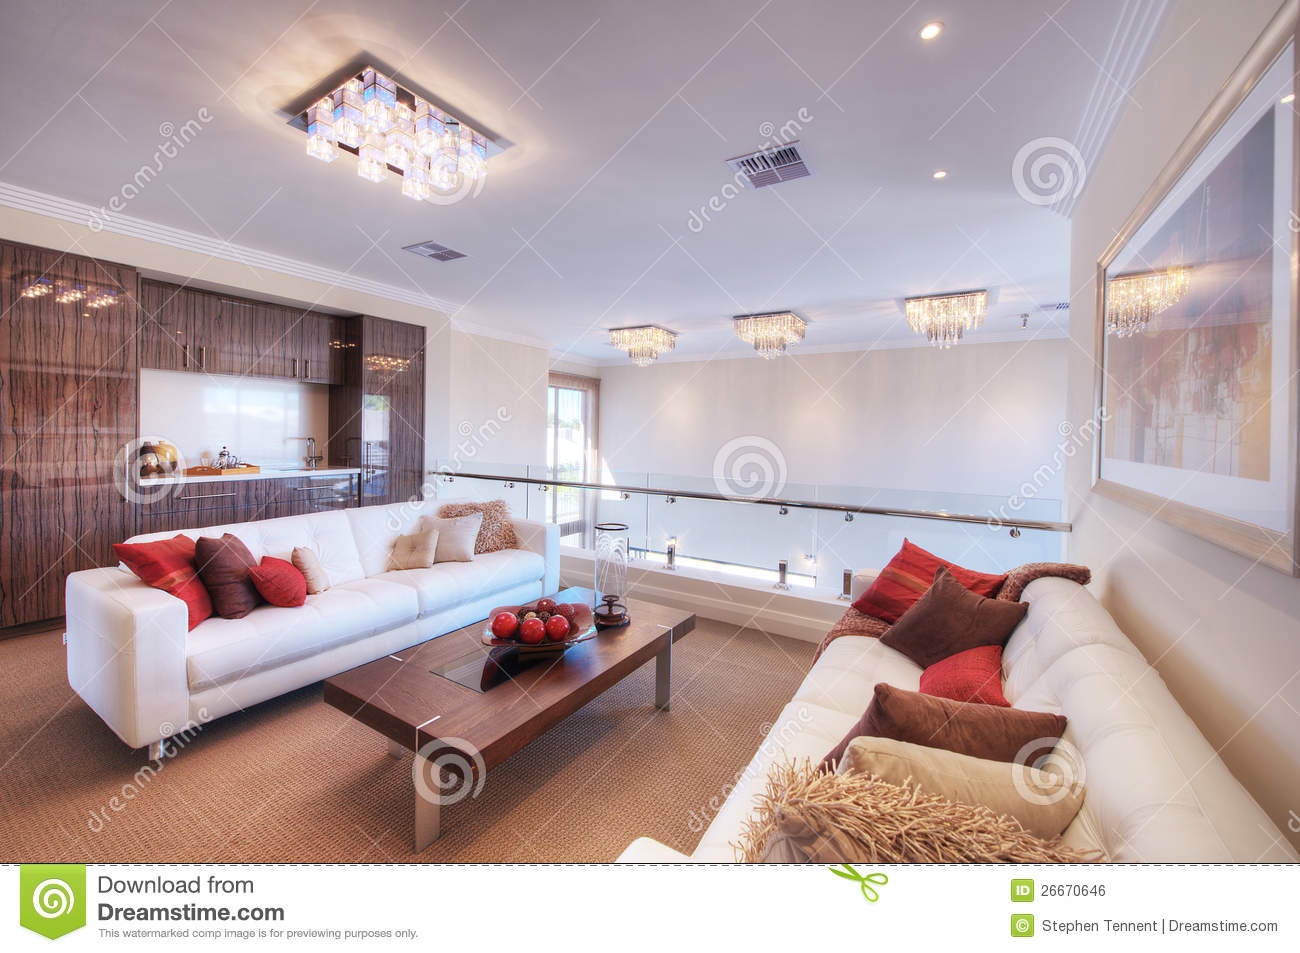 white sofa modern living room how to make easy slipcovers for with stock photo image